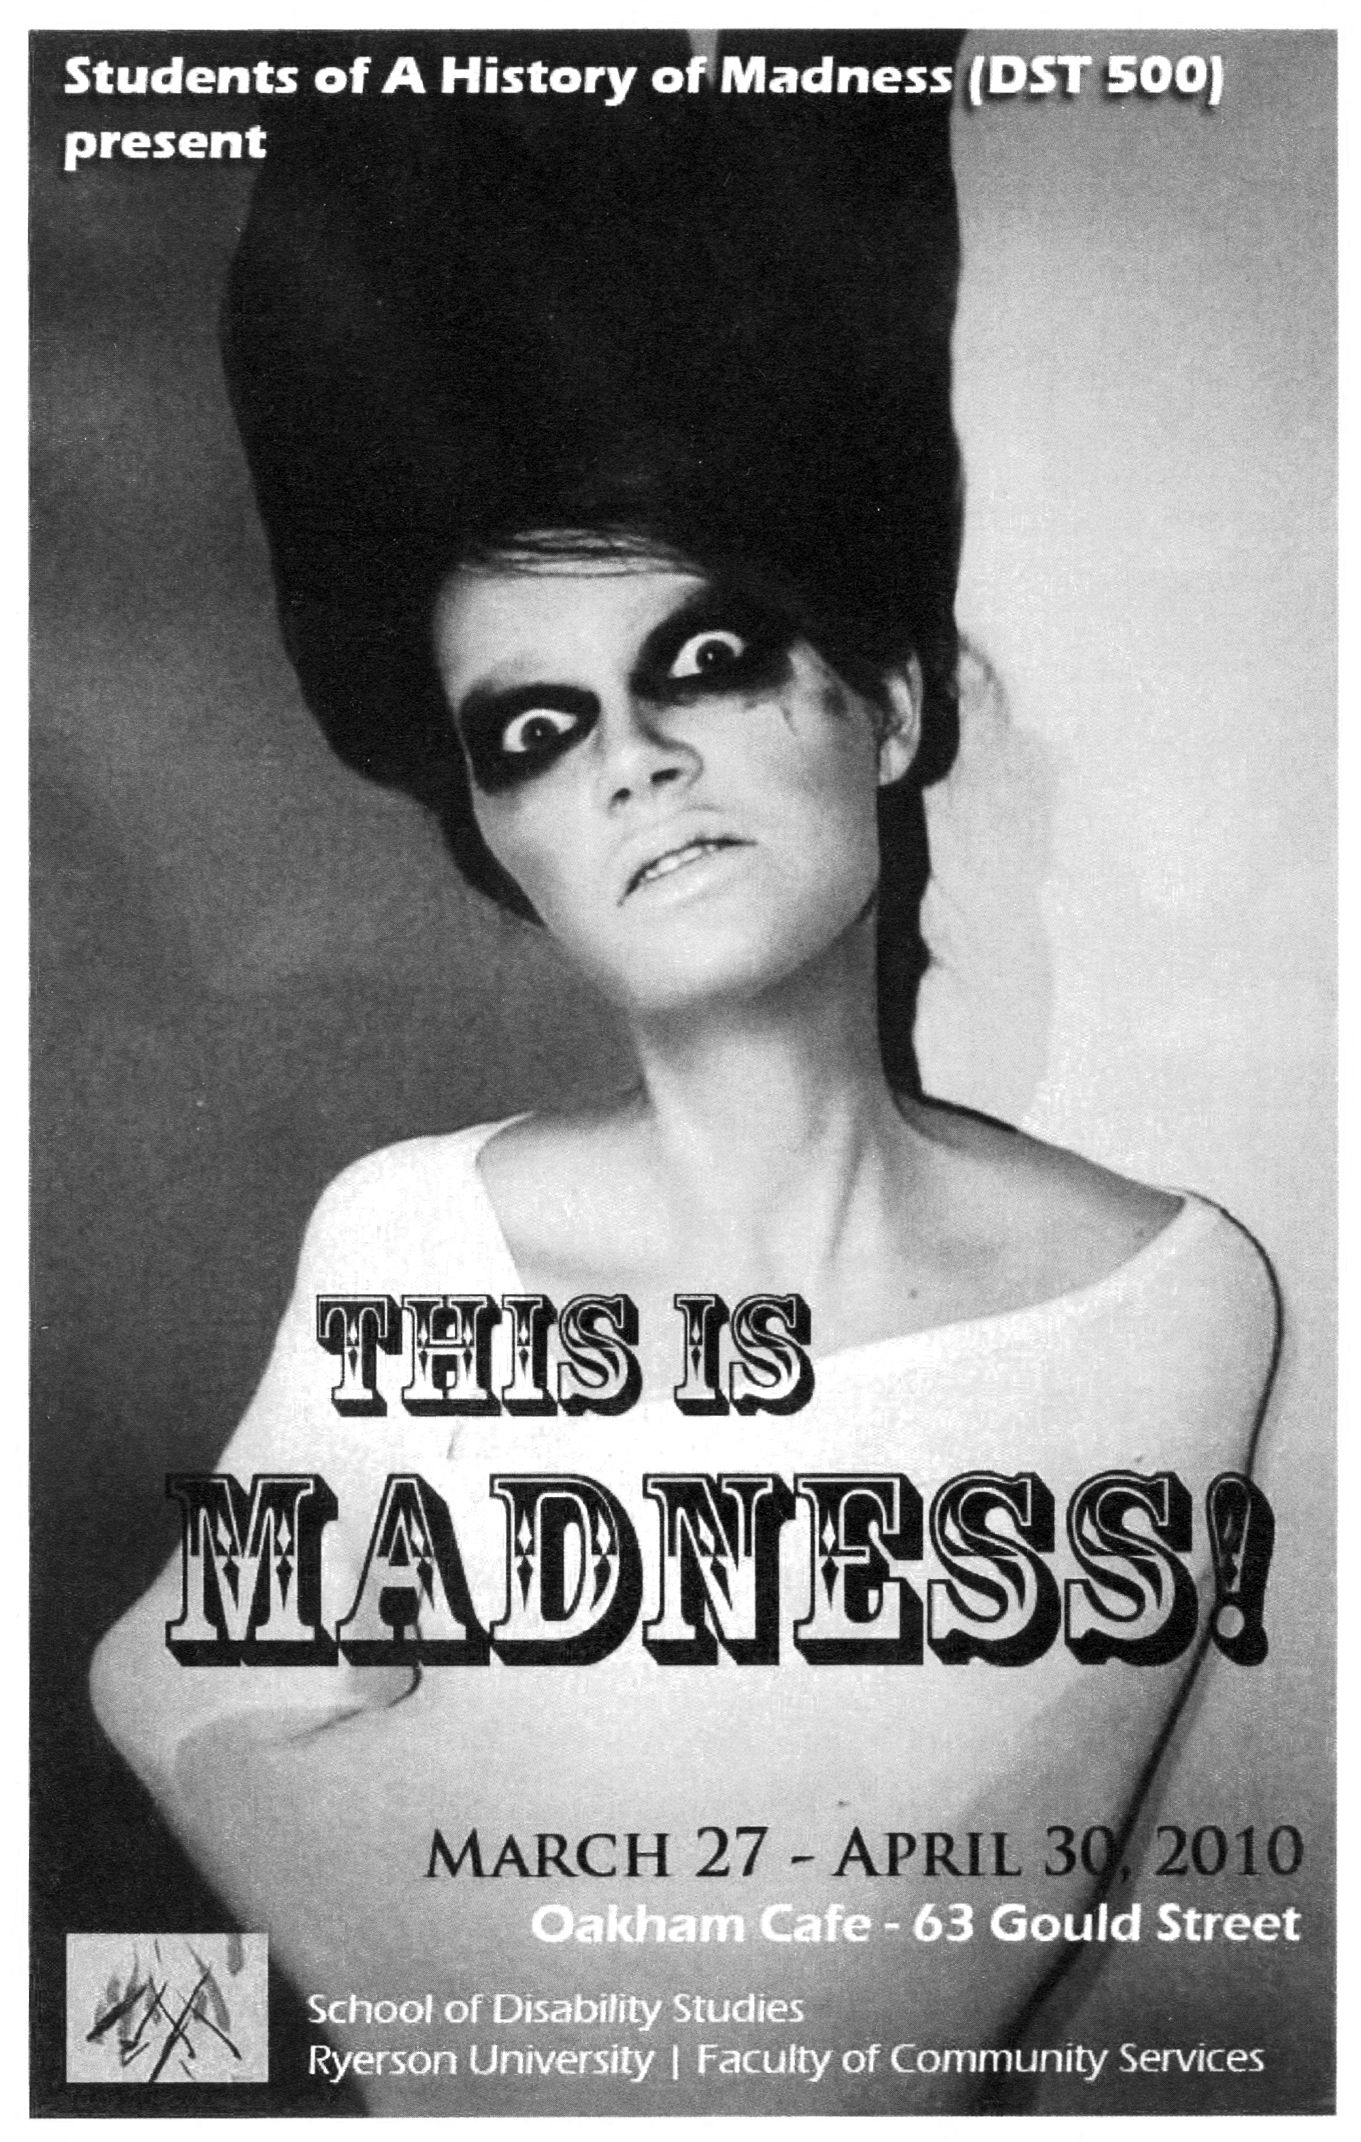 """Poster featuring woman with dark eye makeup advertising """"This is Madness!"""" art exhibit"""